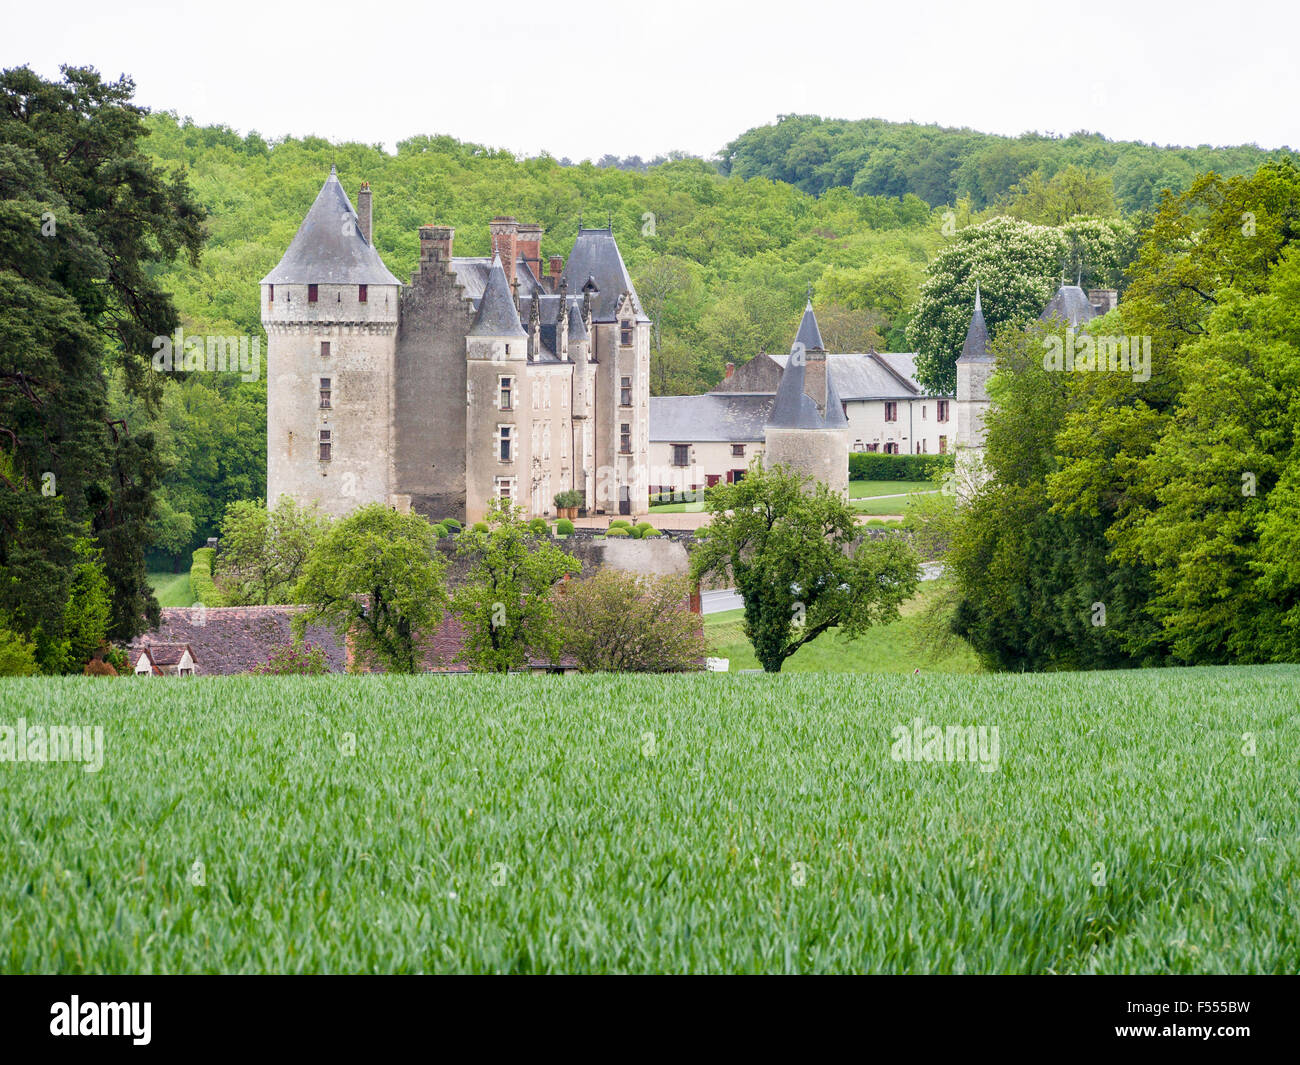 Chateau below a Wheat field. A green crop of wheat frames a view of Château de Montpoupon in the Loire countryside. - Stock Image